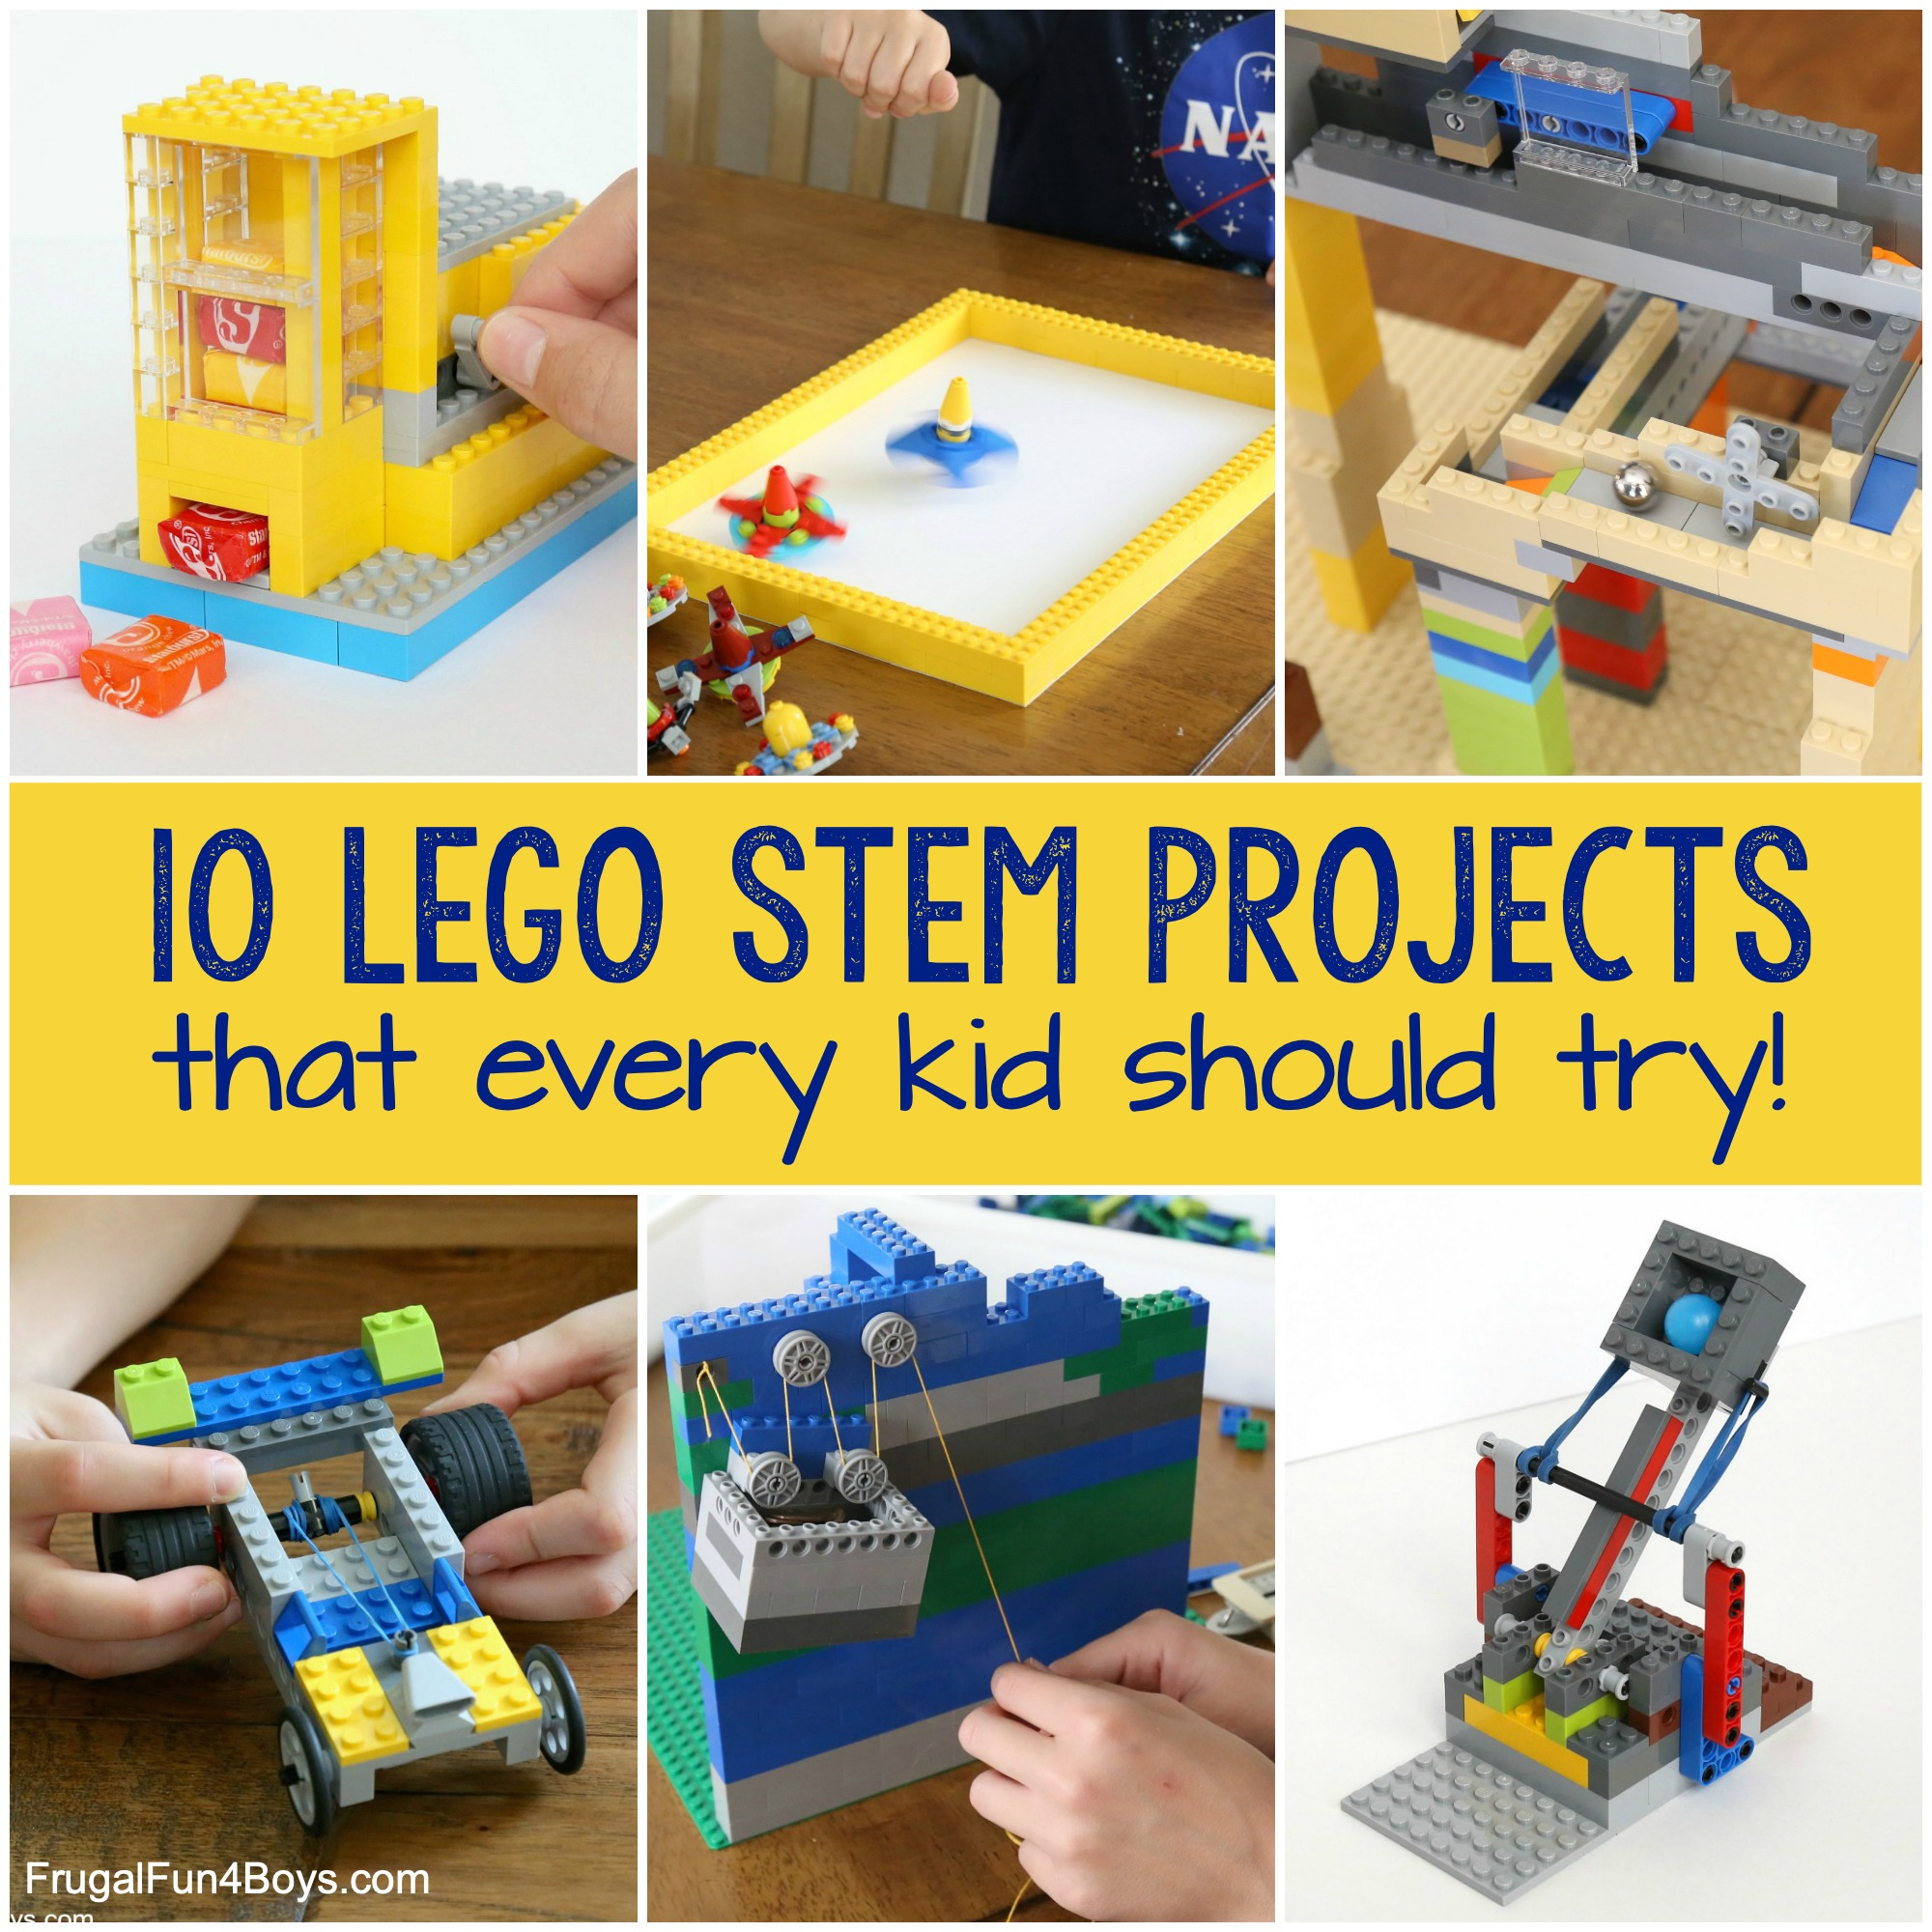 LEGO STEM Projects